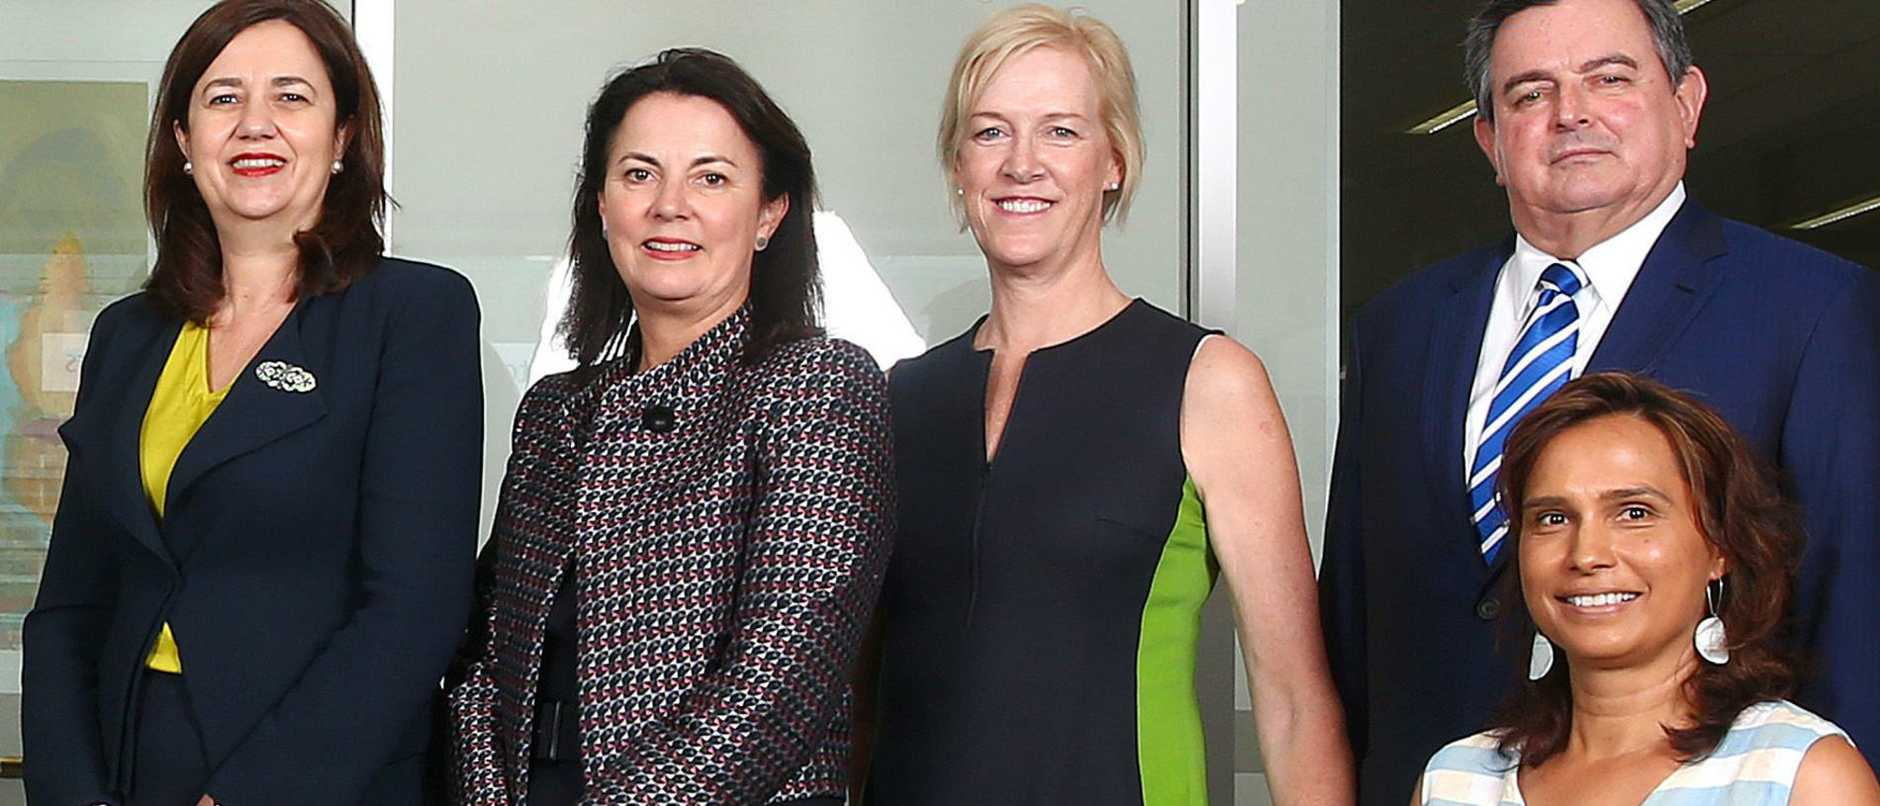 Annastacia Palaszczuk has found some powerful backing for Queensland's Olympic Games bid.